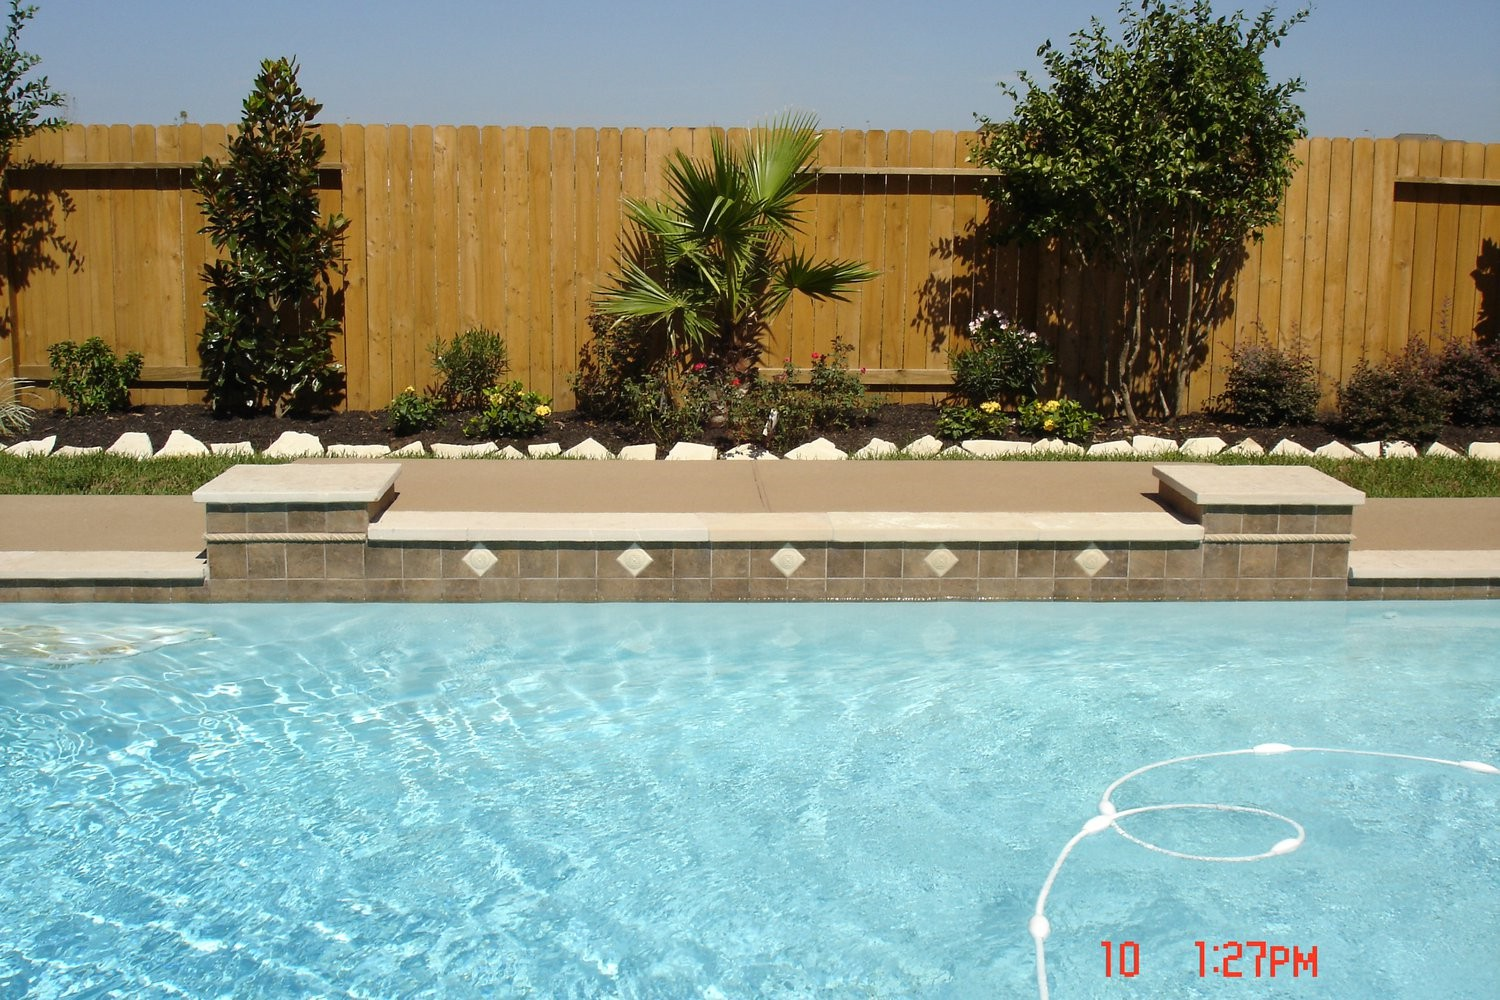 Spring pool designs tomball katy kingwood cypress for Pool design katy